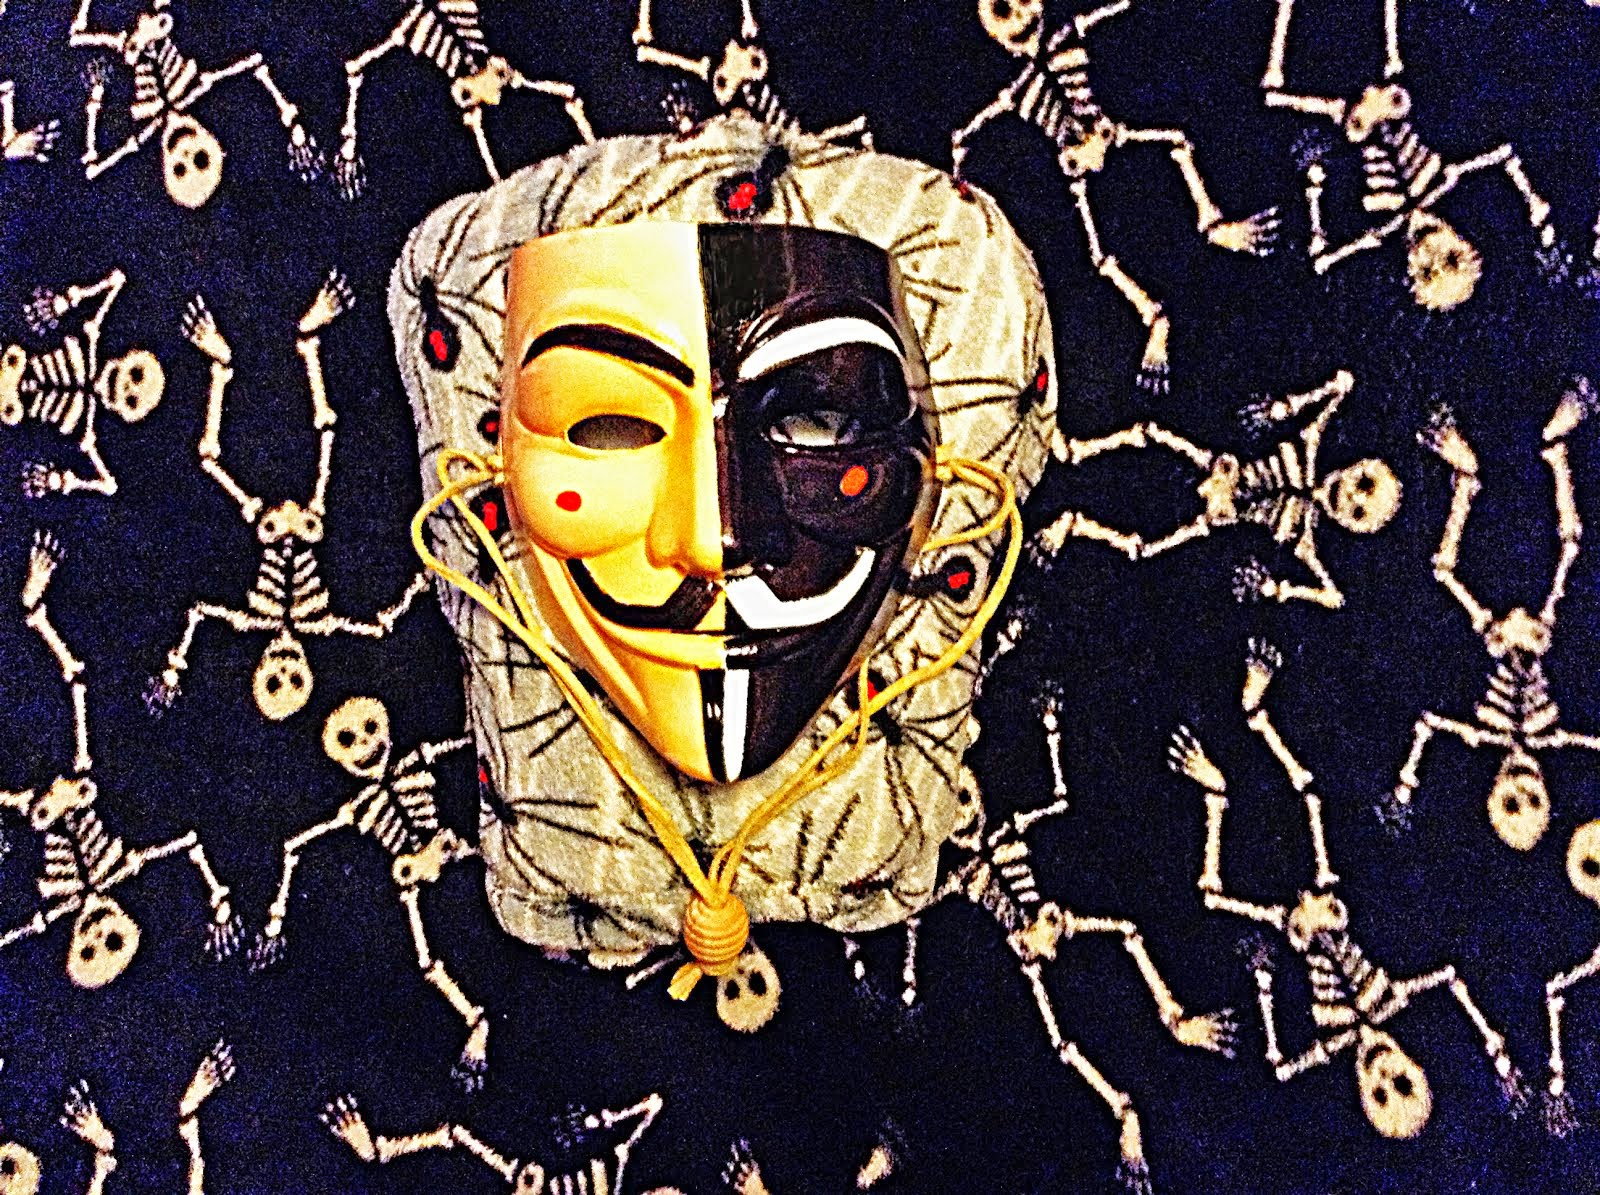 Guy Fawkes Mask Hand Painted by Brian Thomas Armstrong